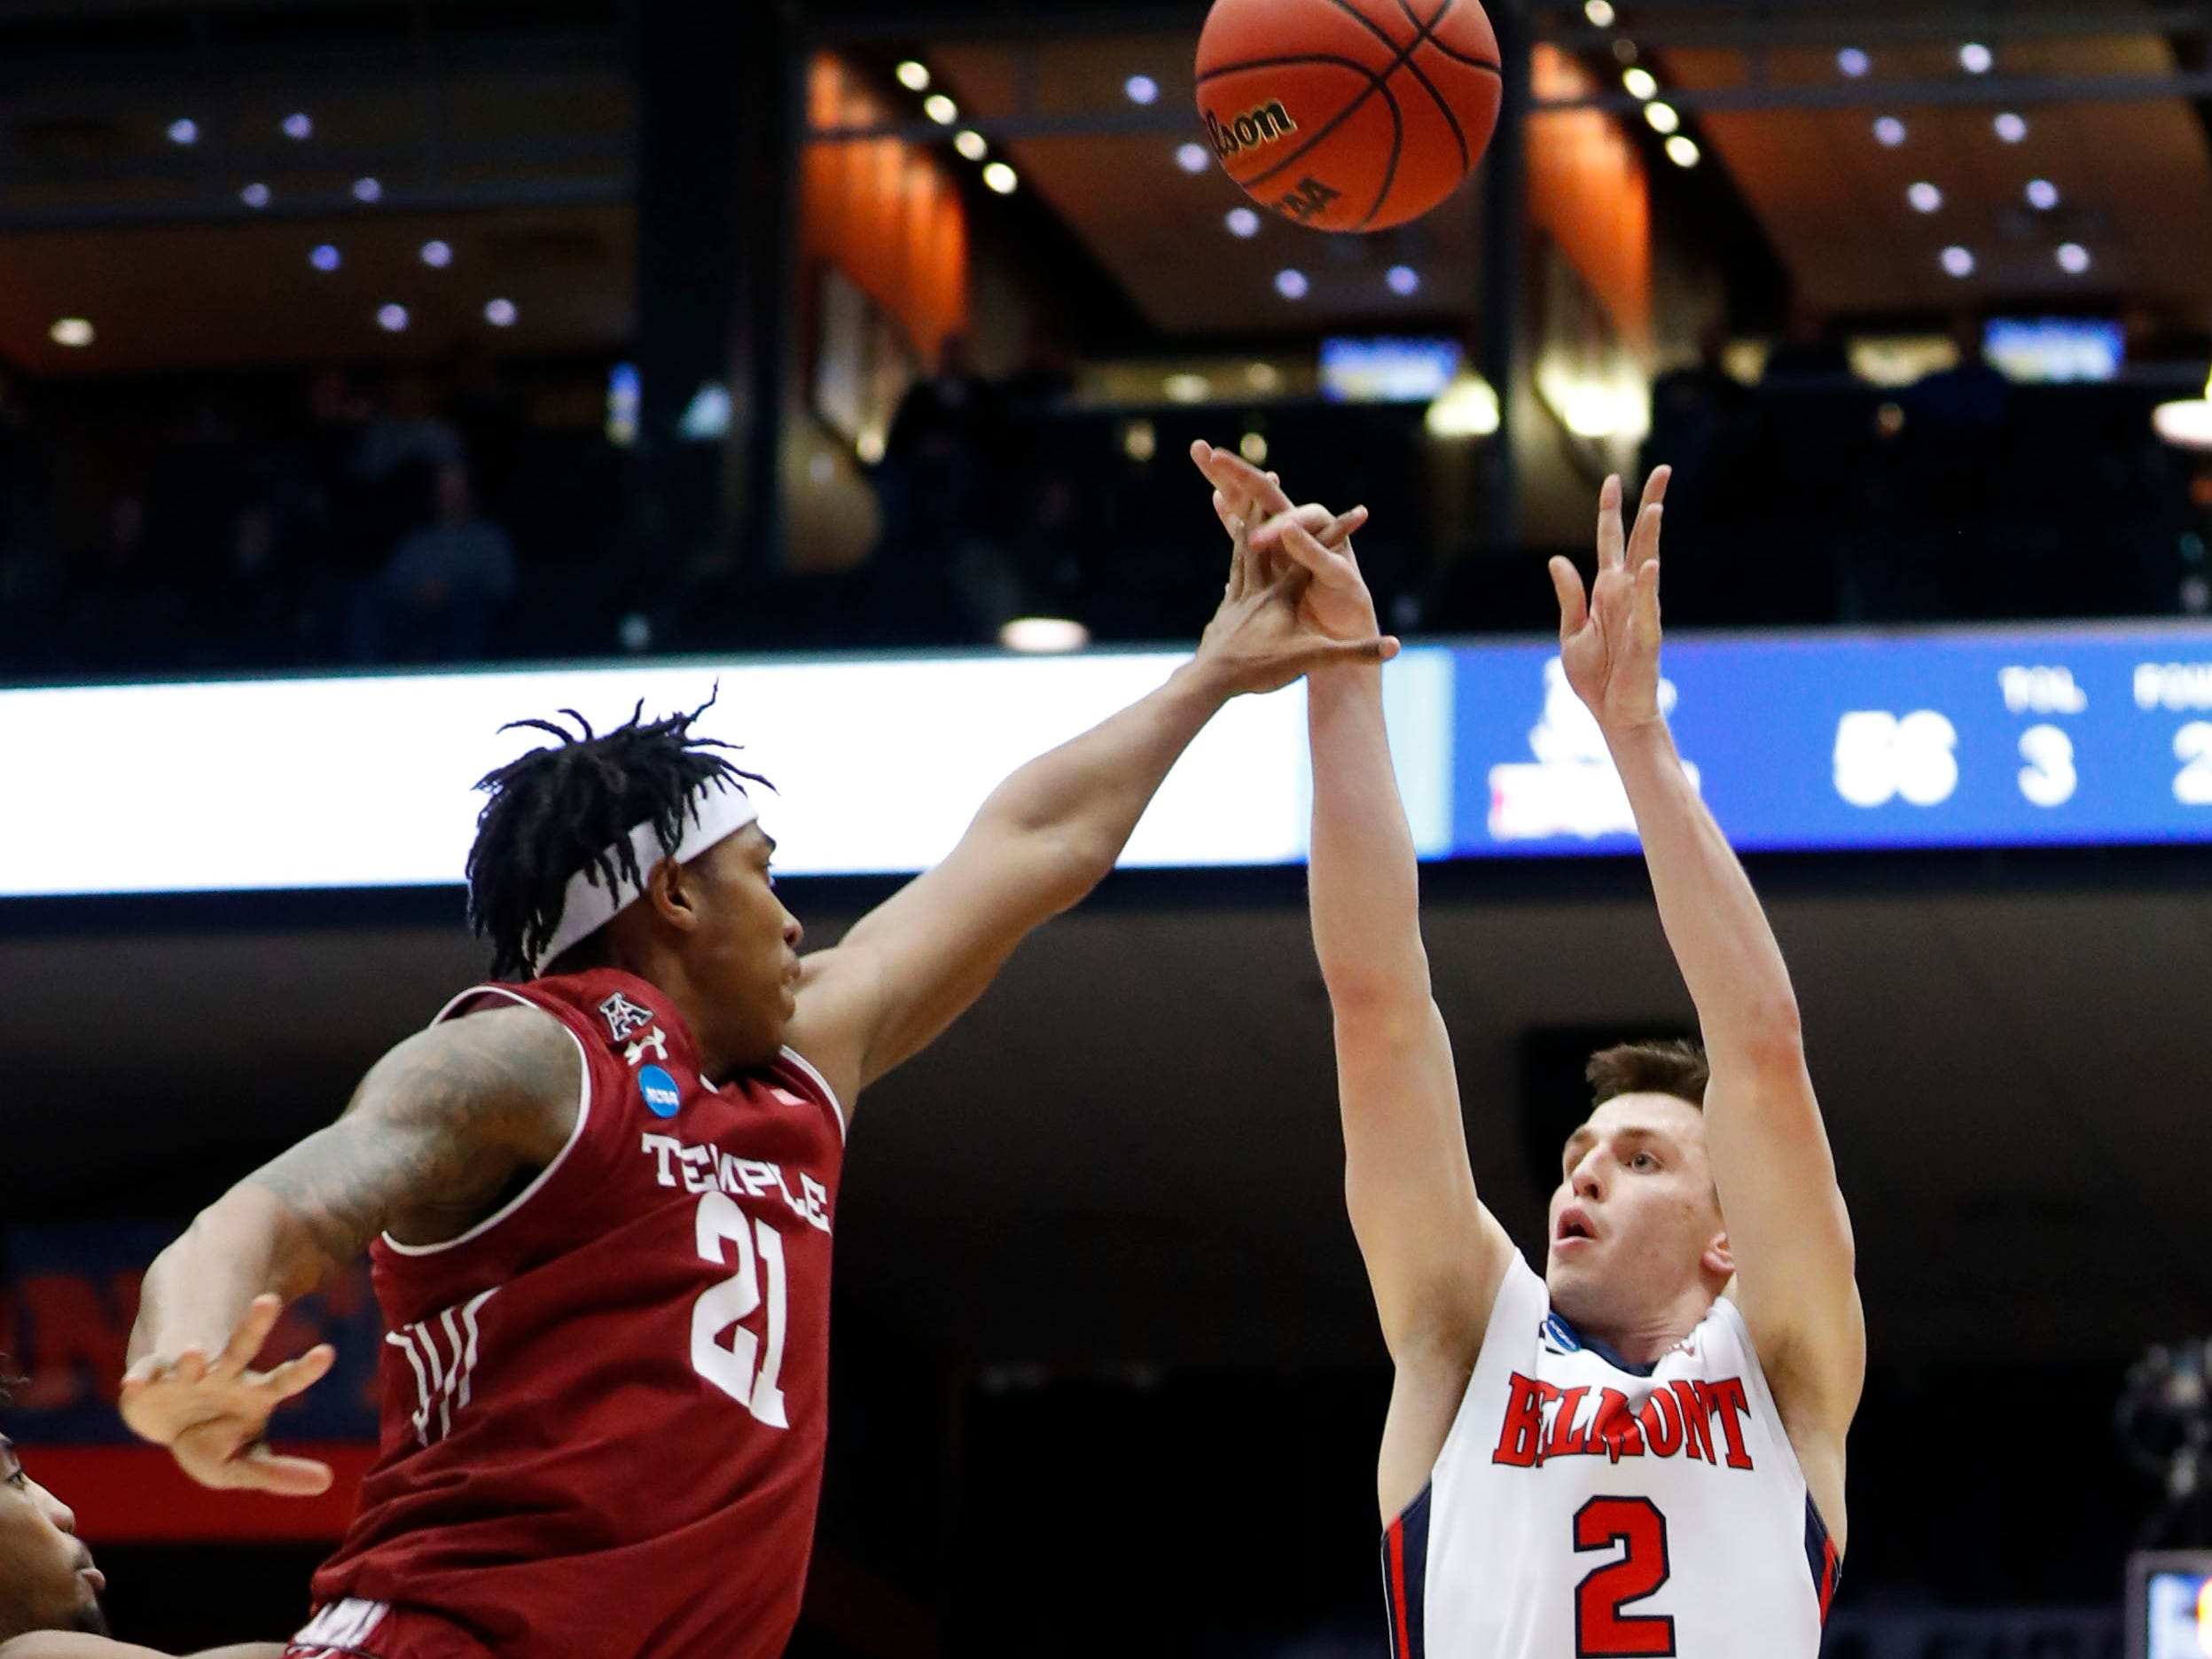 Belmont Bruins guard Grayson Murphy shoots the ball over Temple Owls forward Justyn Hamilton.